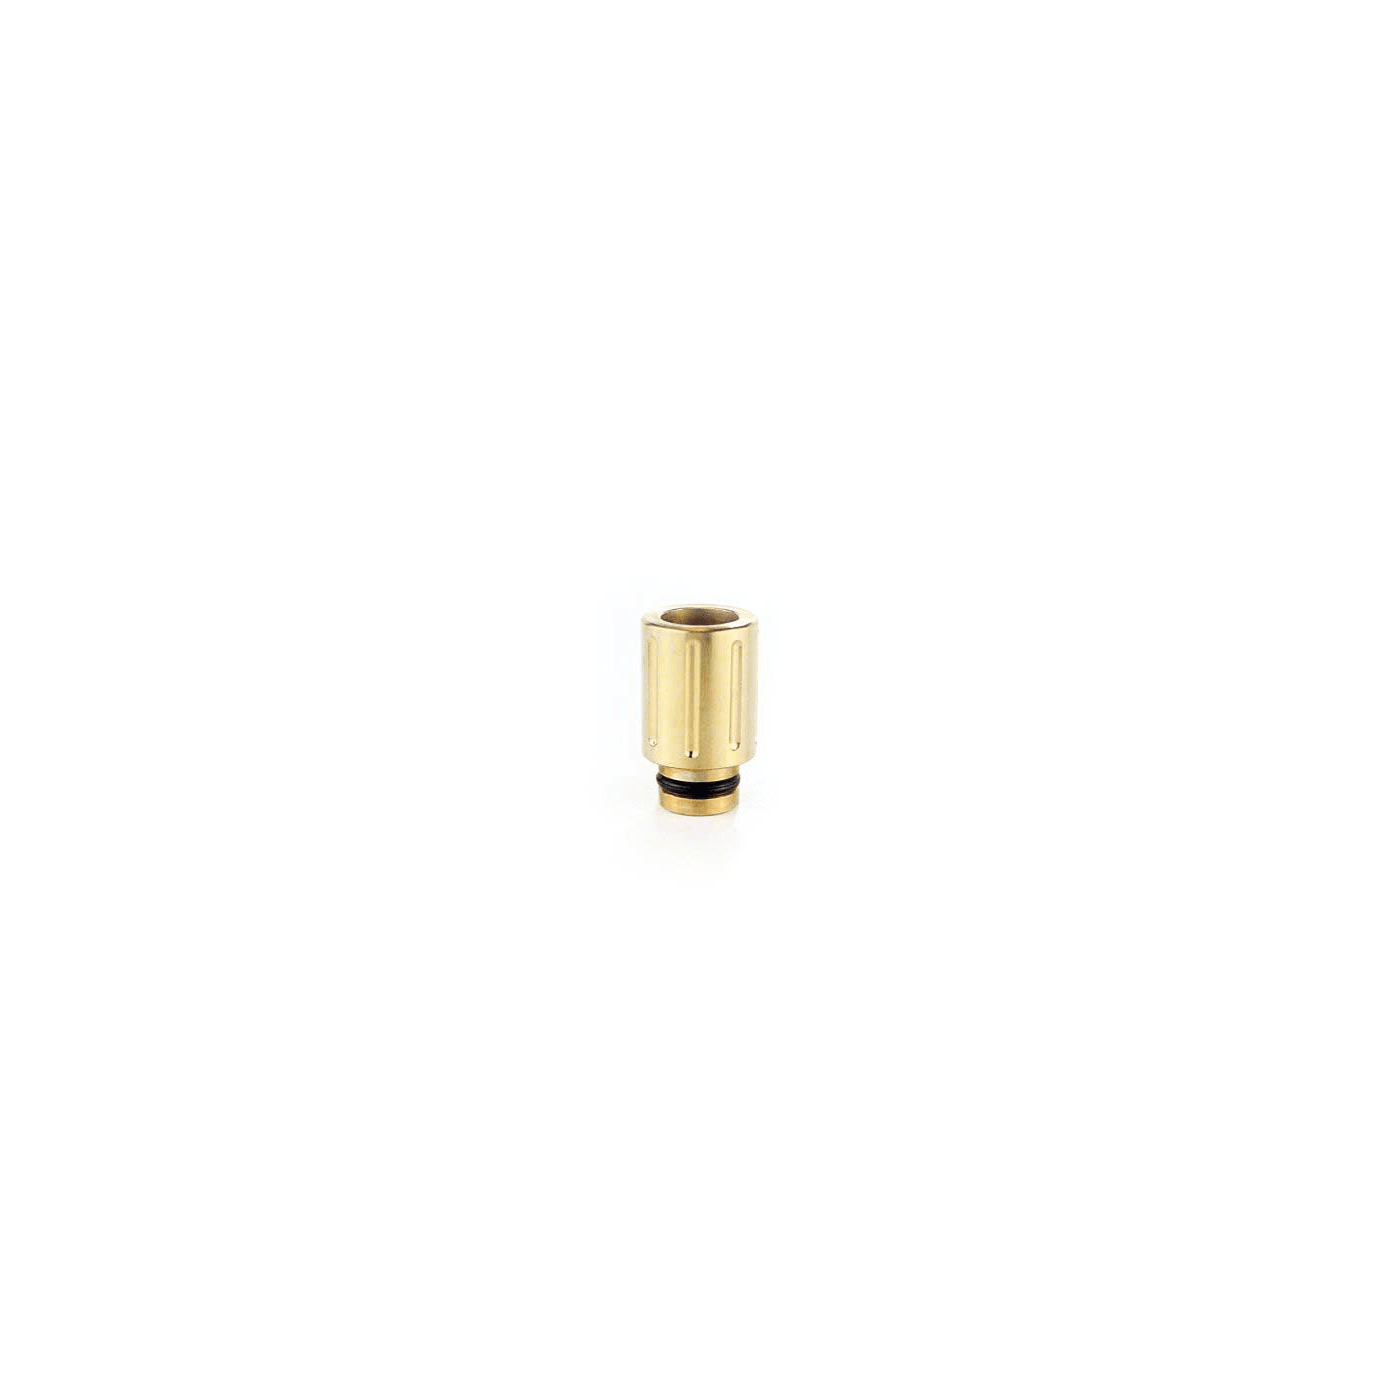 STR Well Drip Tip Gold